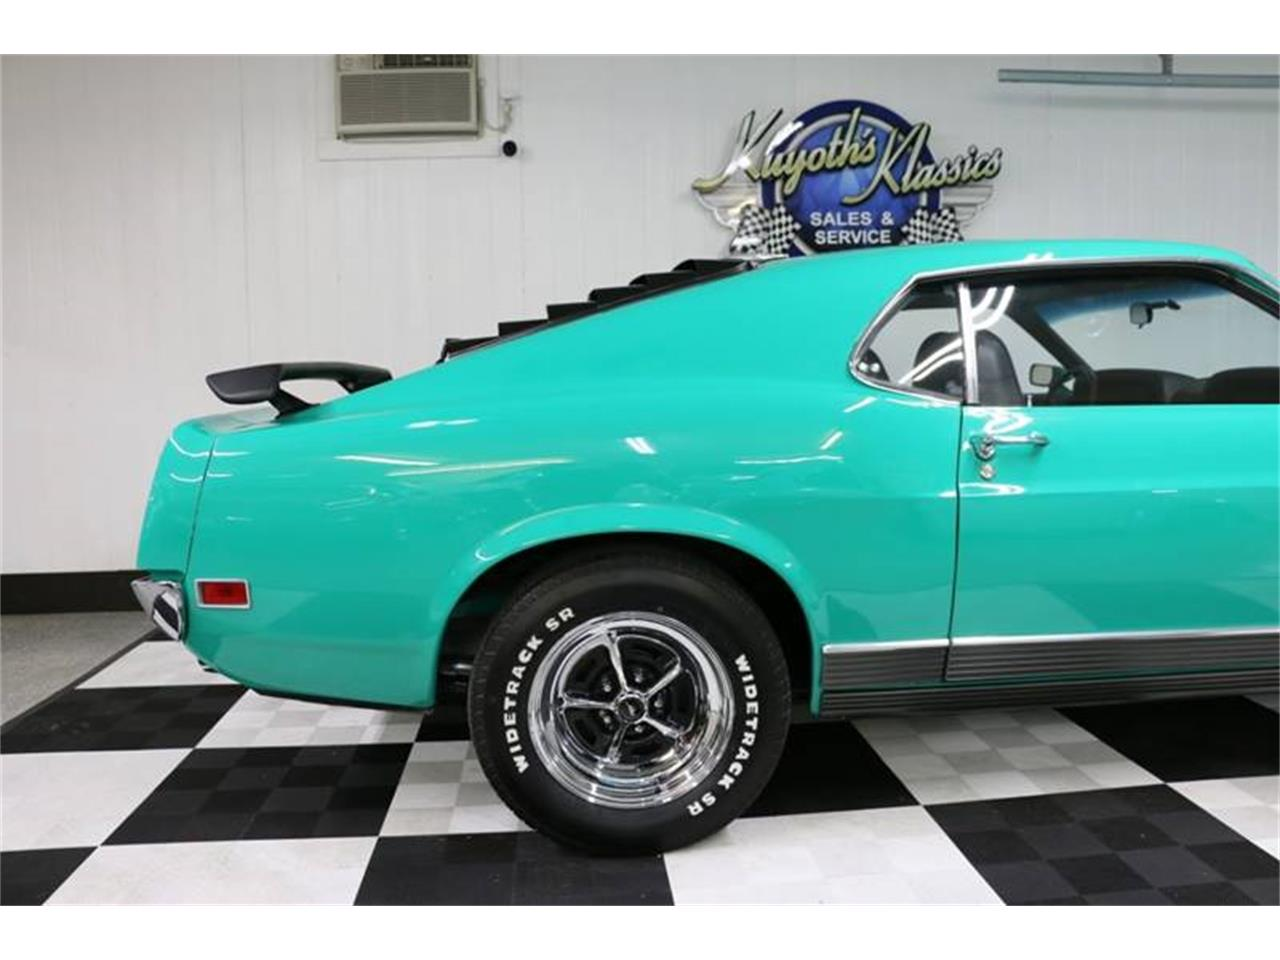 Large Picture of '70 Ford Mustang located in Wisconsin Offered by Kuyoth's Klassics - Q6NU